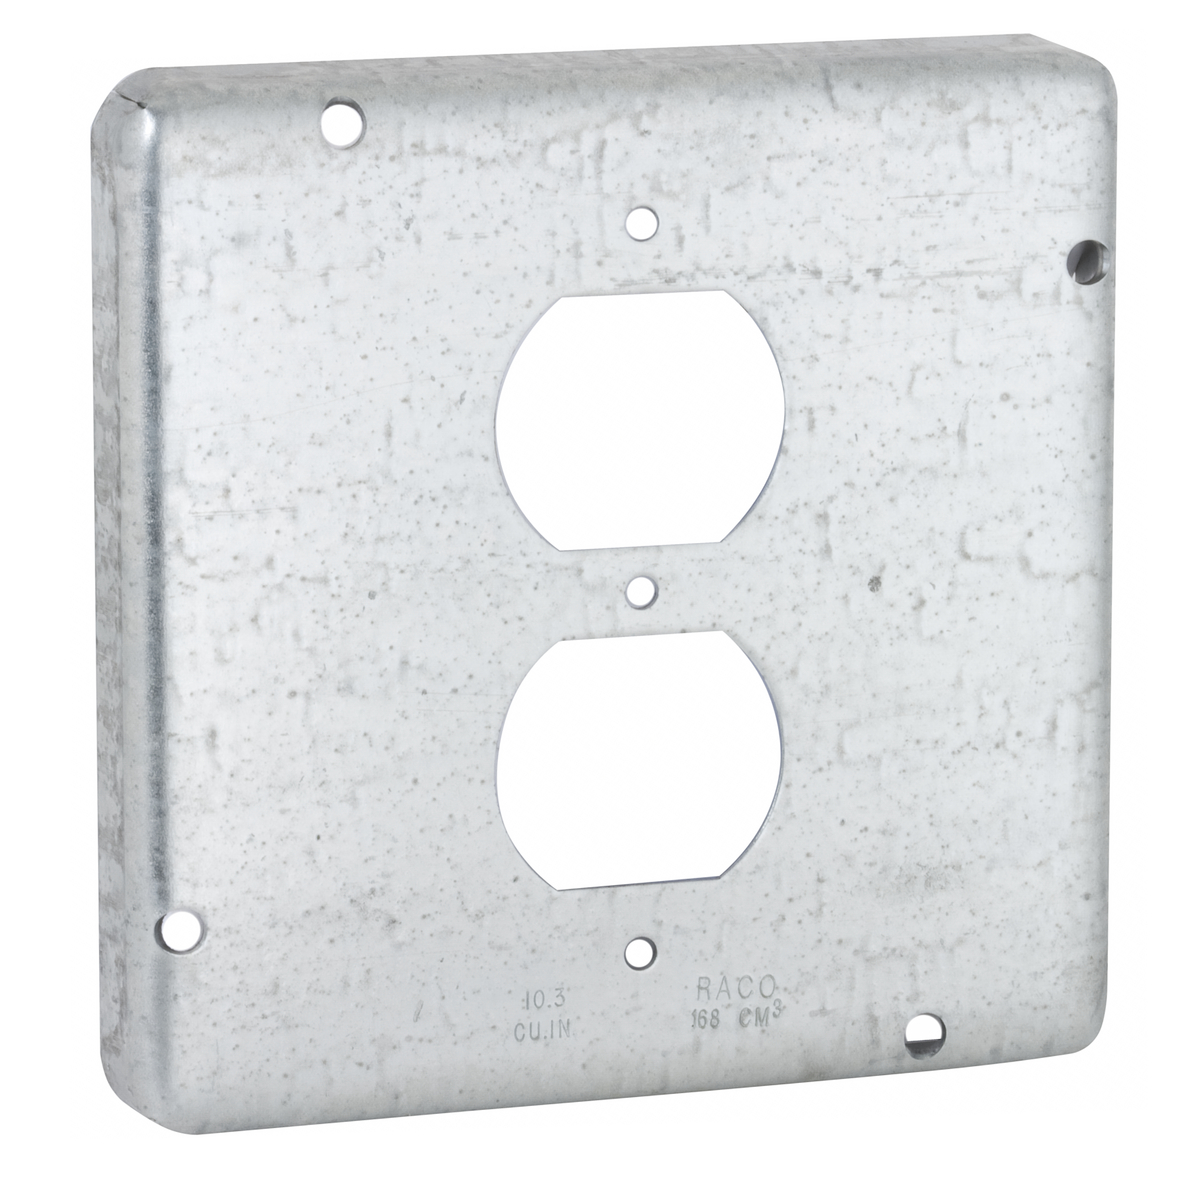 Hubbell-Raco 972 Exposed Work Cover